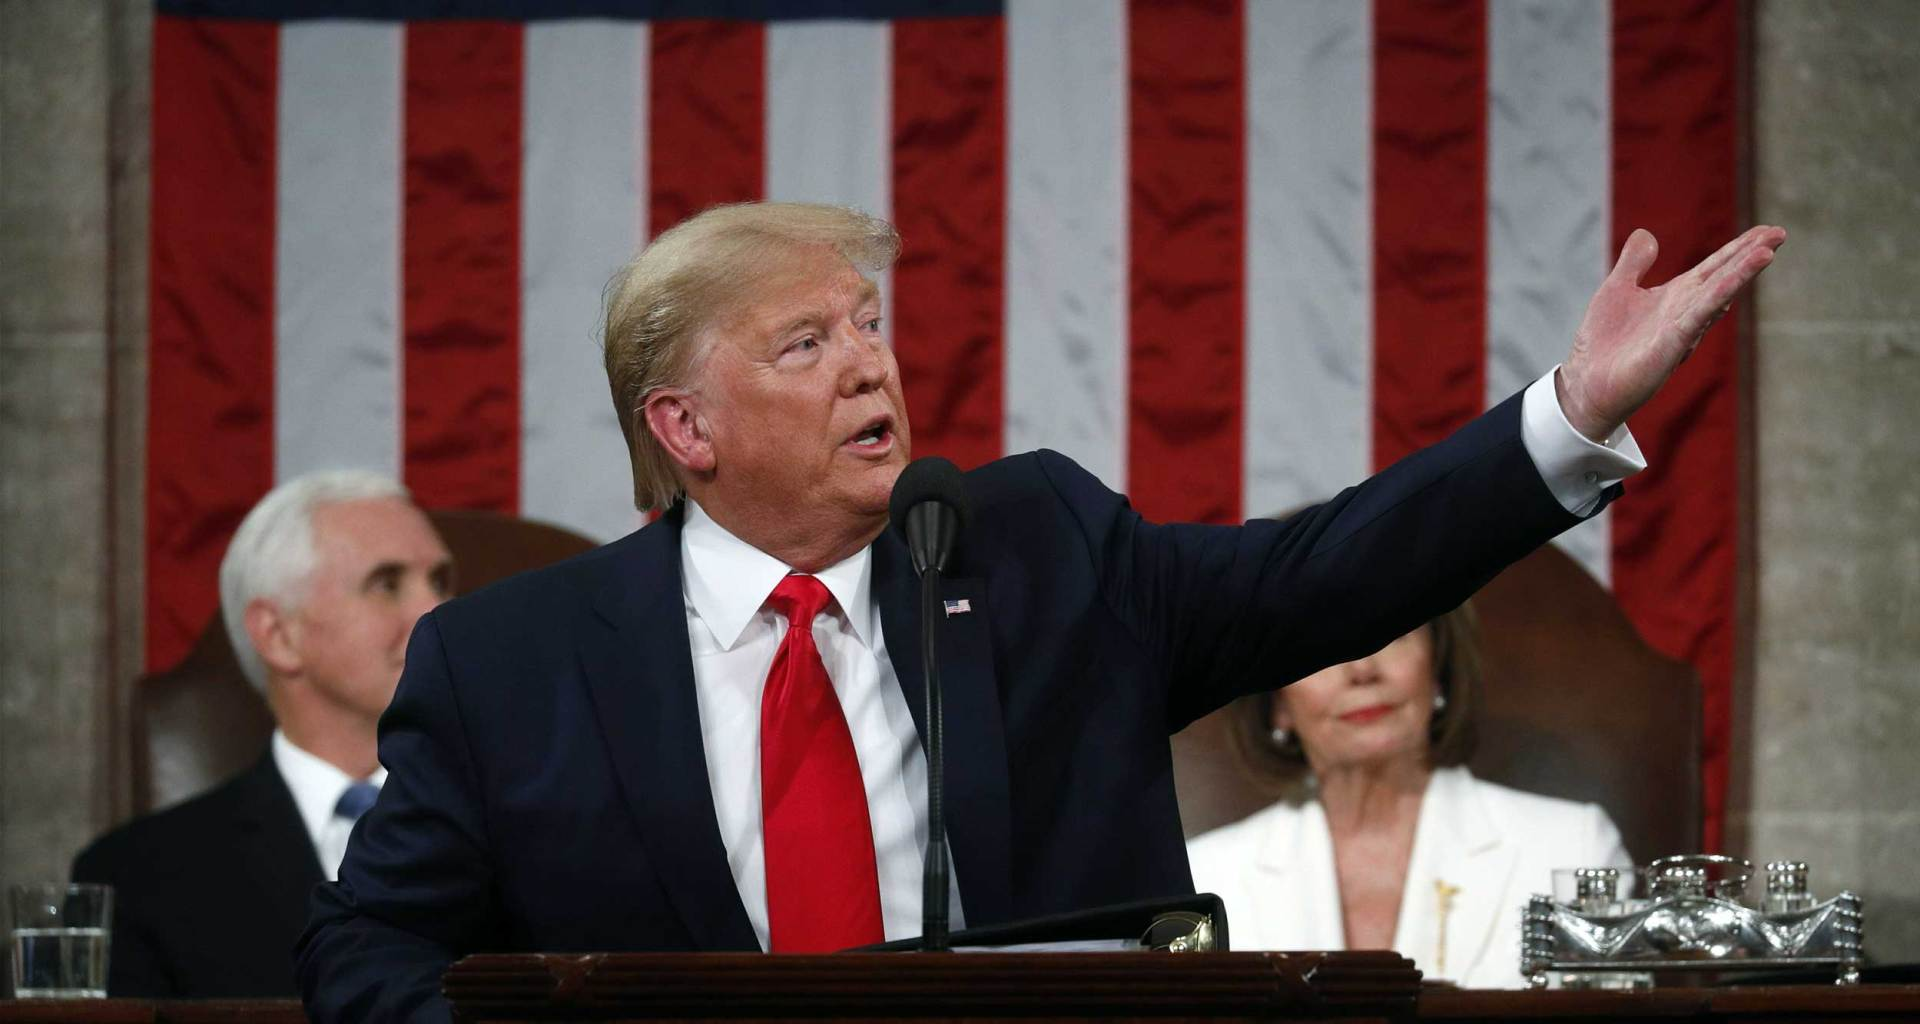 President Donald Trump at the 2020 State of the Union.